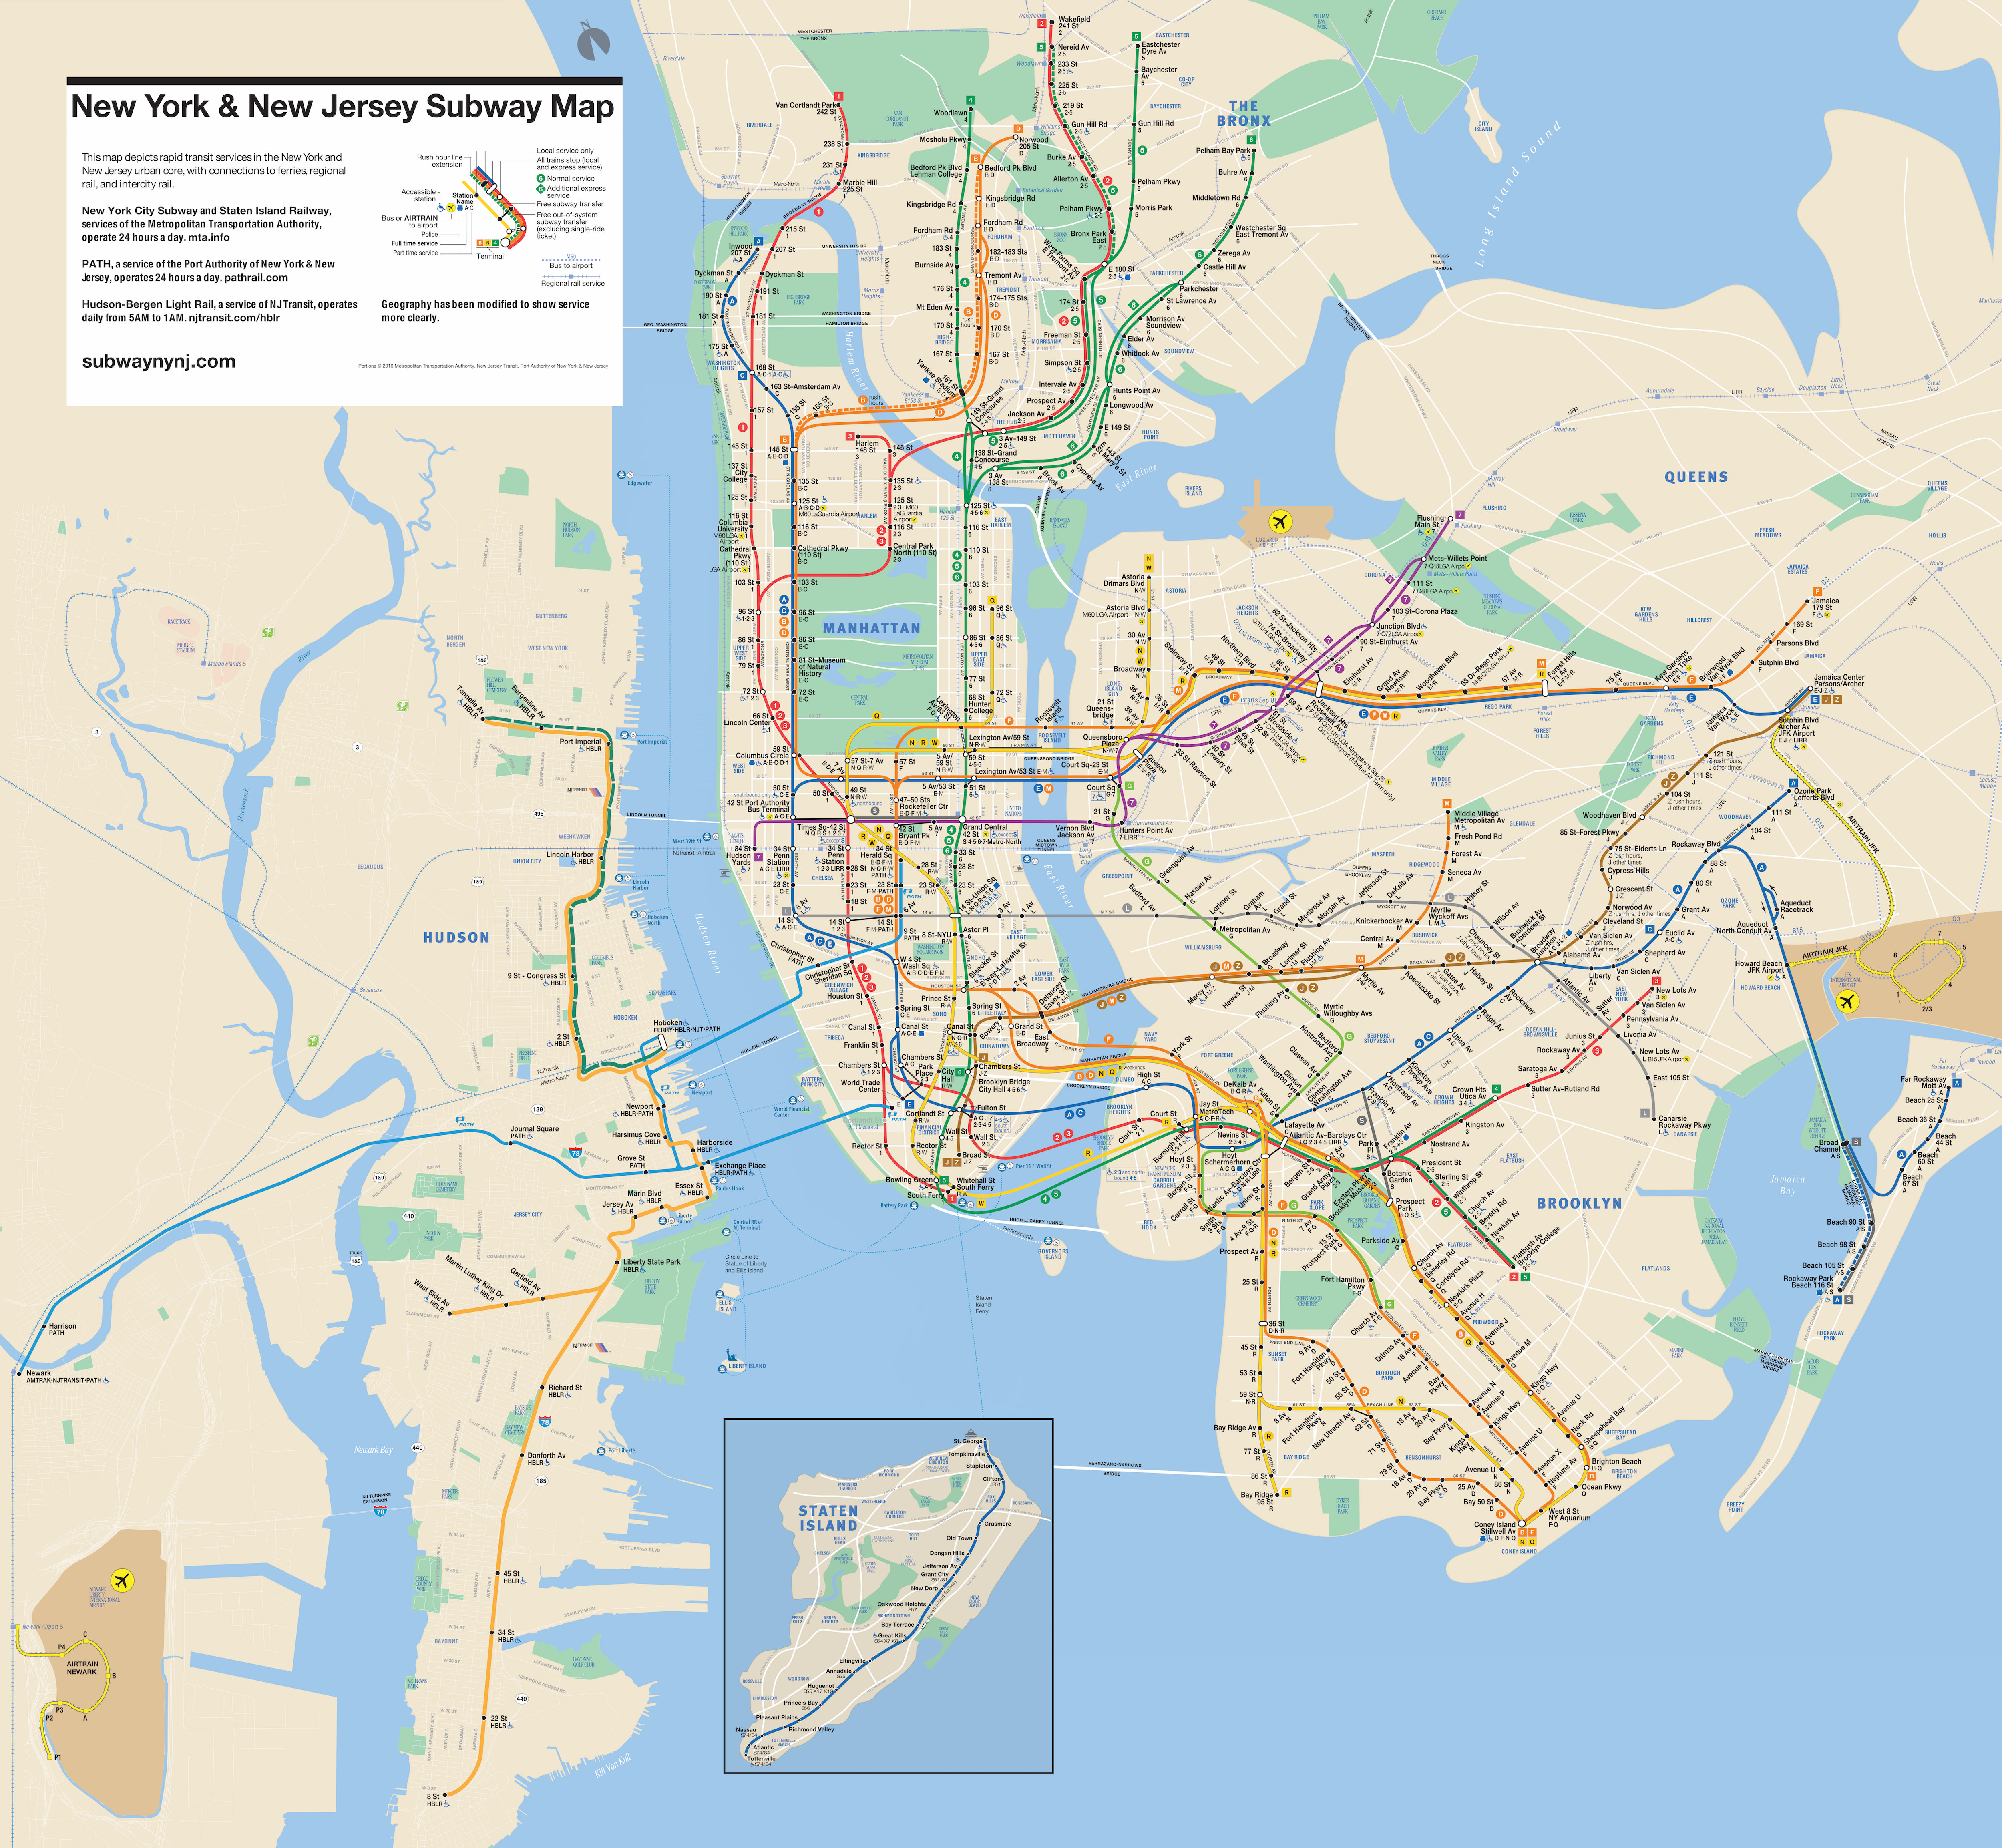 Path Subway Map New York & New Jersey Subway Map